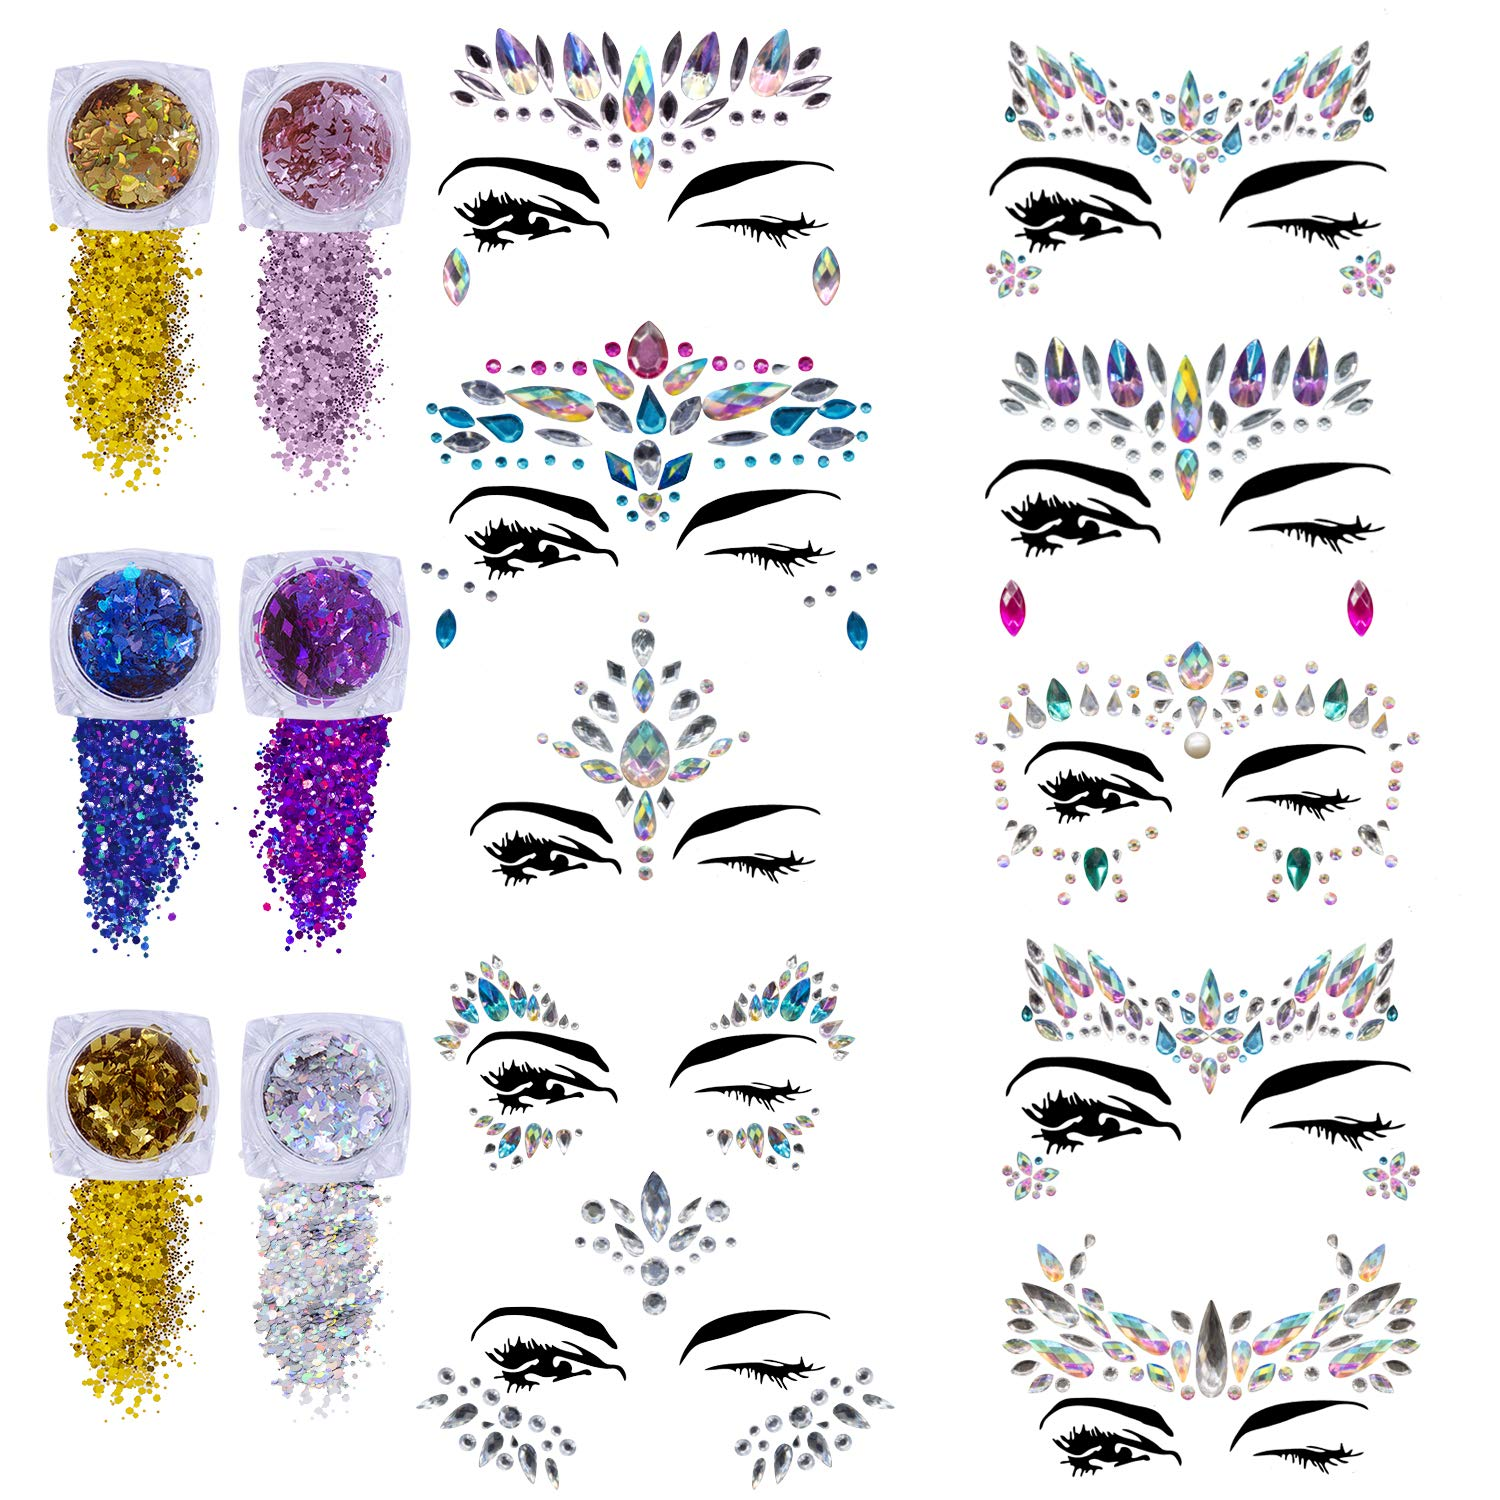 Face Gems Glitter - 10 Sets Women Mermaid Face Jewels with 6 Boxes Chunky Face Glitter, Crystals Face Stickers, Eyes Face Body Temporary Tattoos Fit for Festival Party